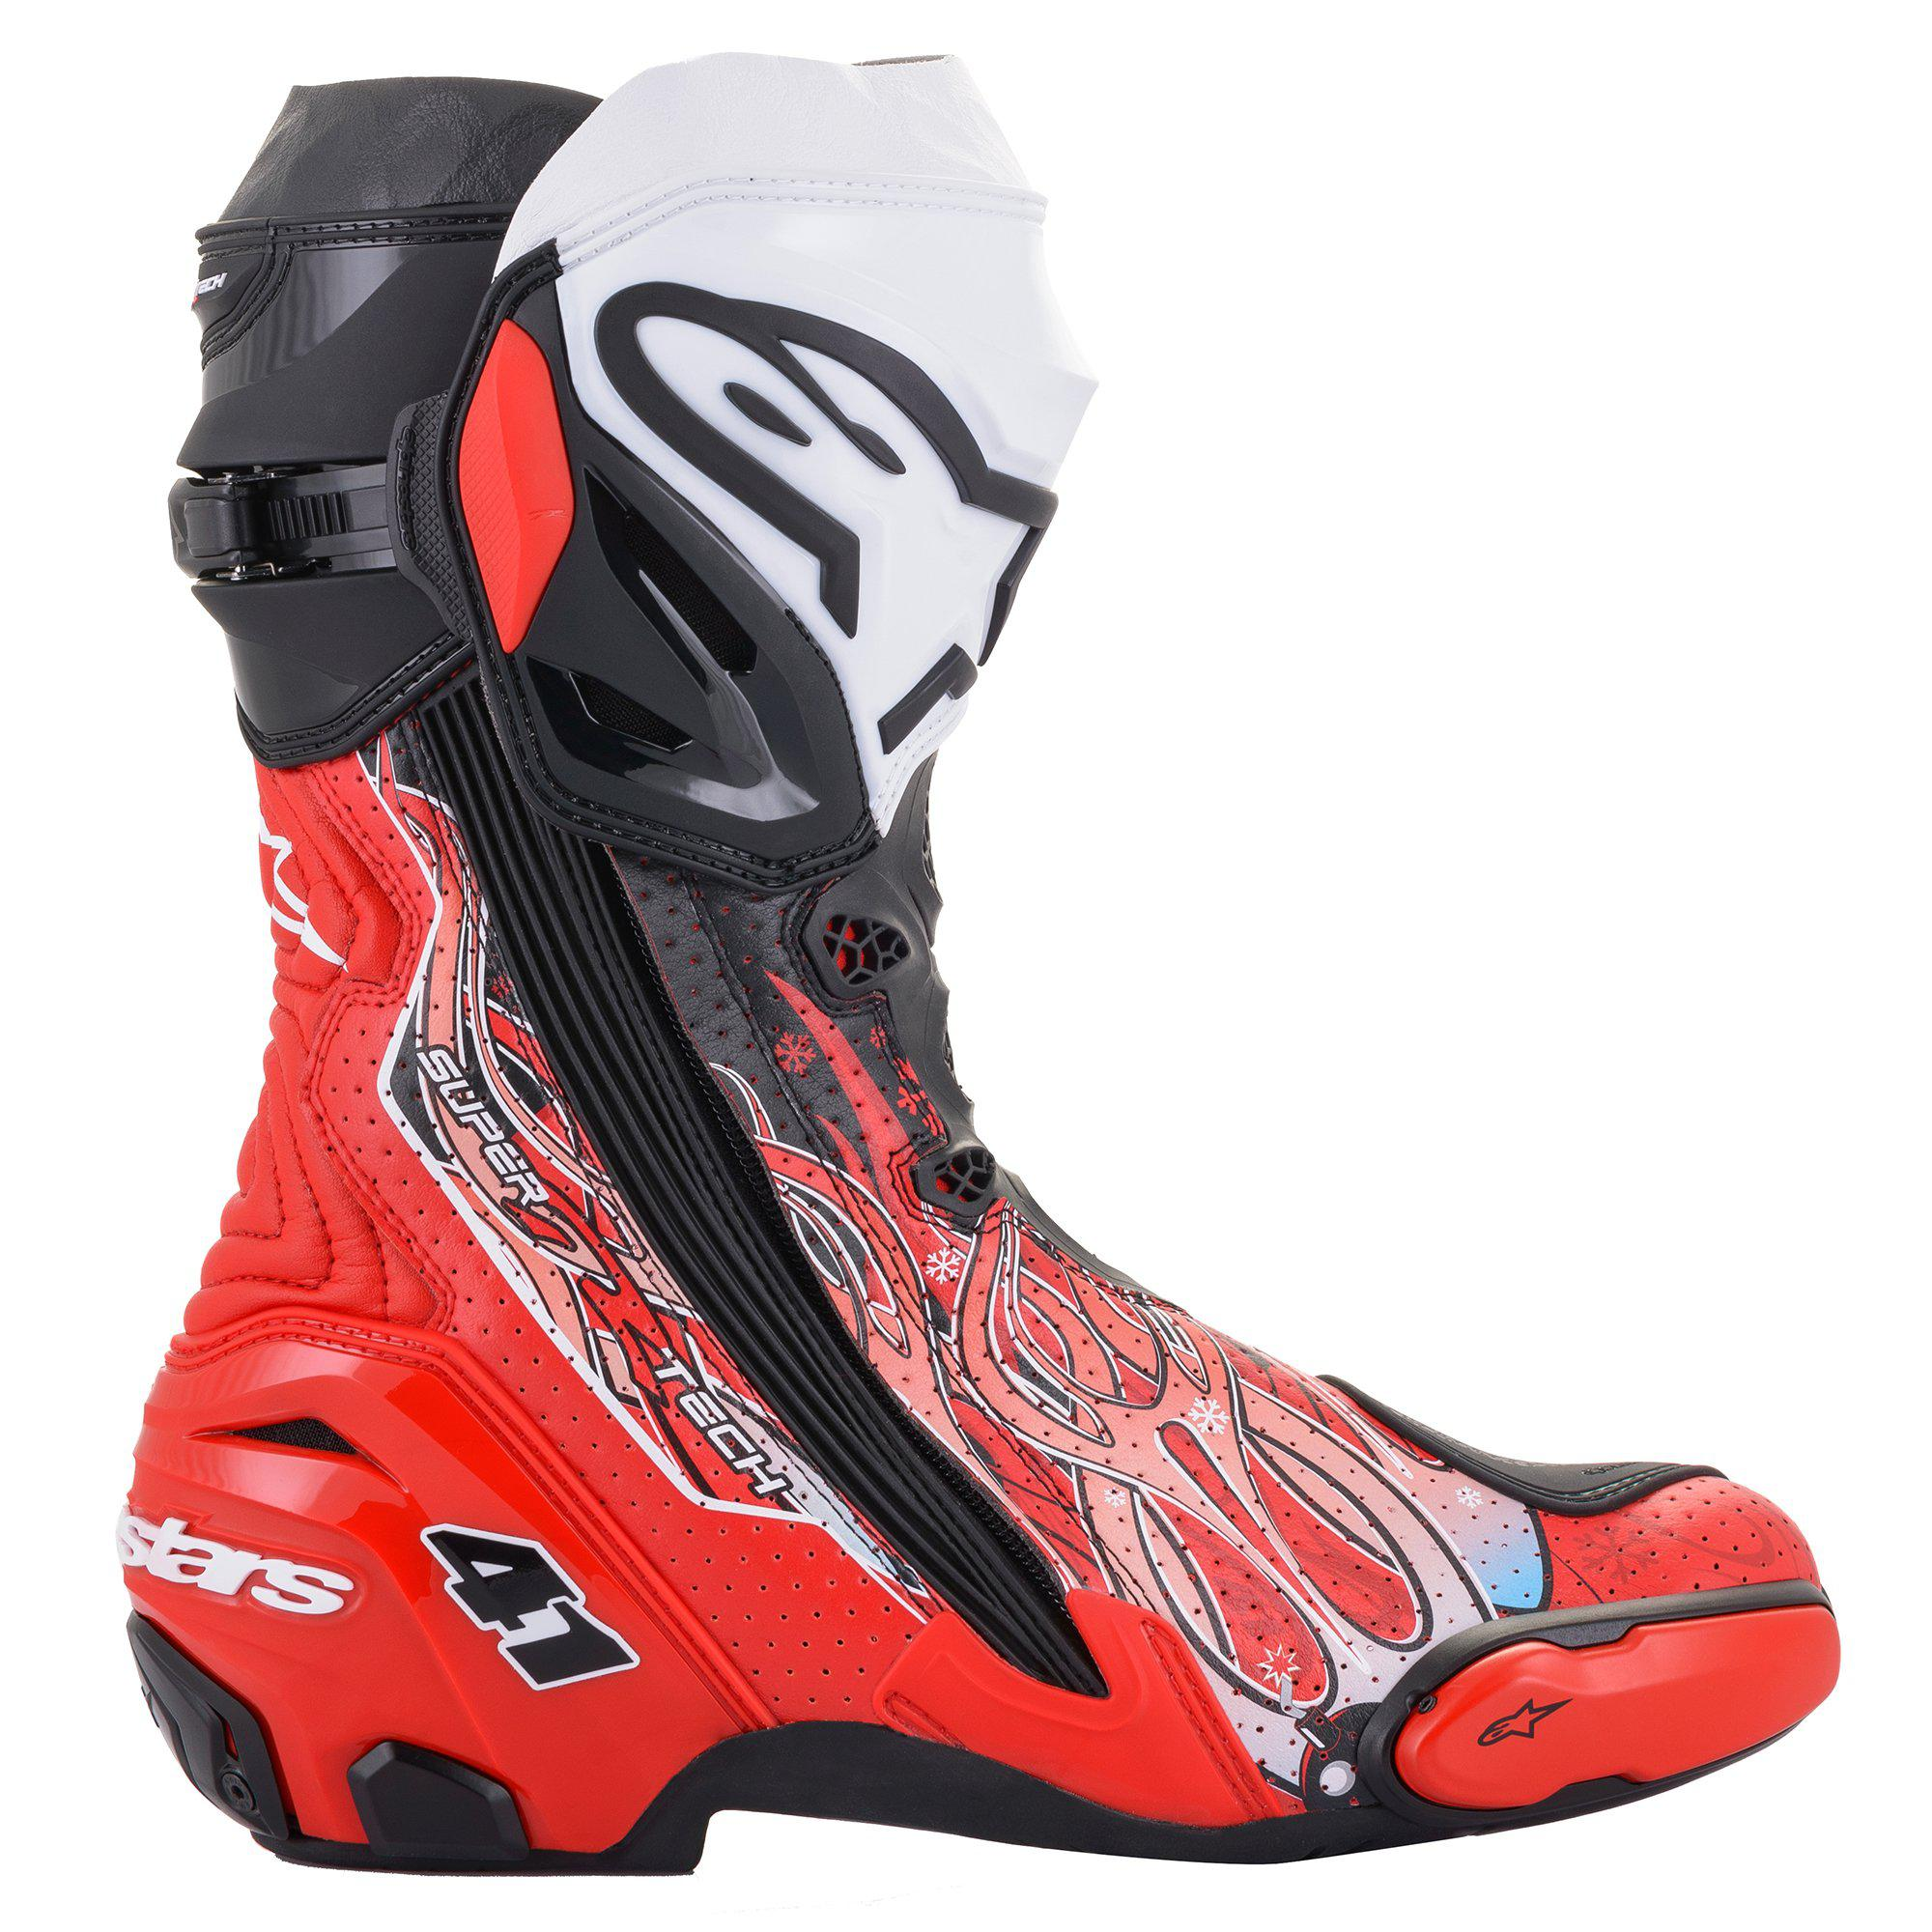 Limited Edition HAGA 2020 Supertech R Boots